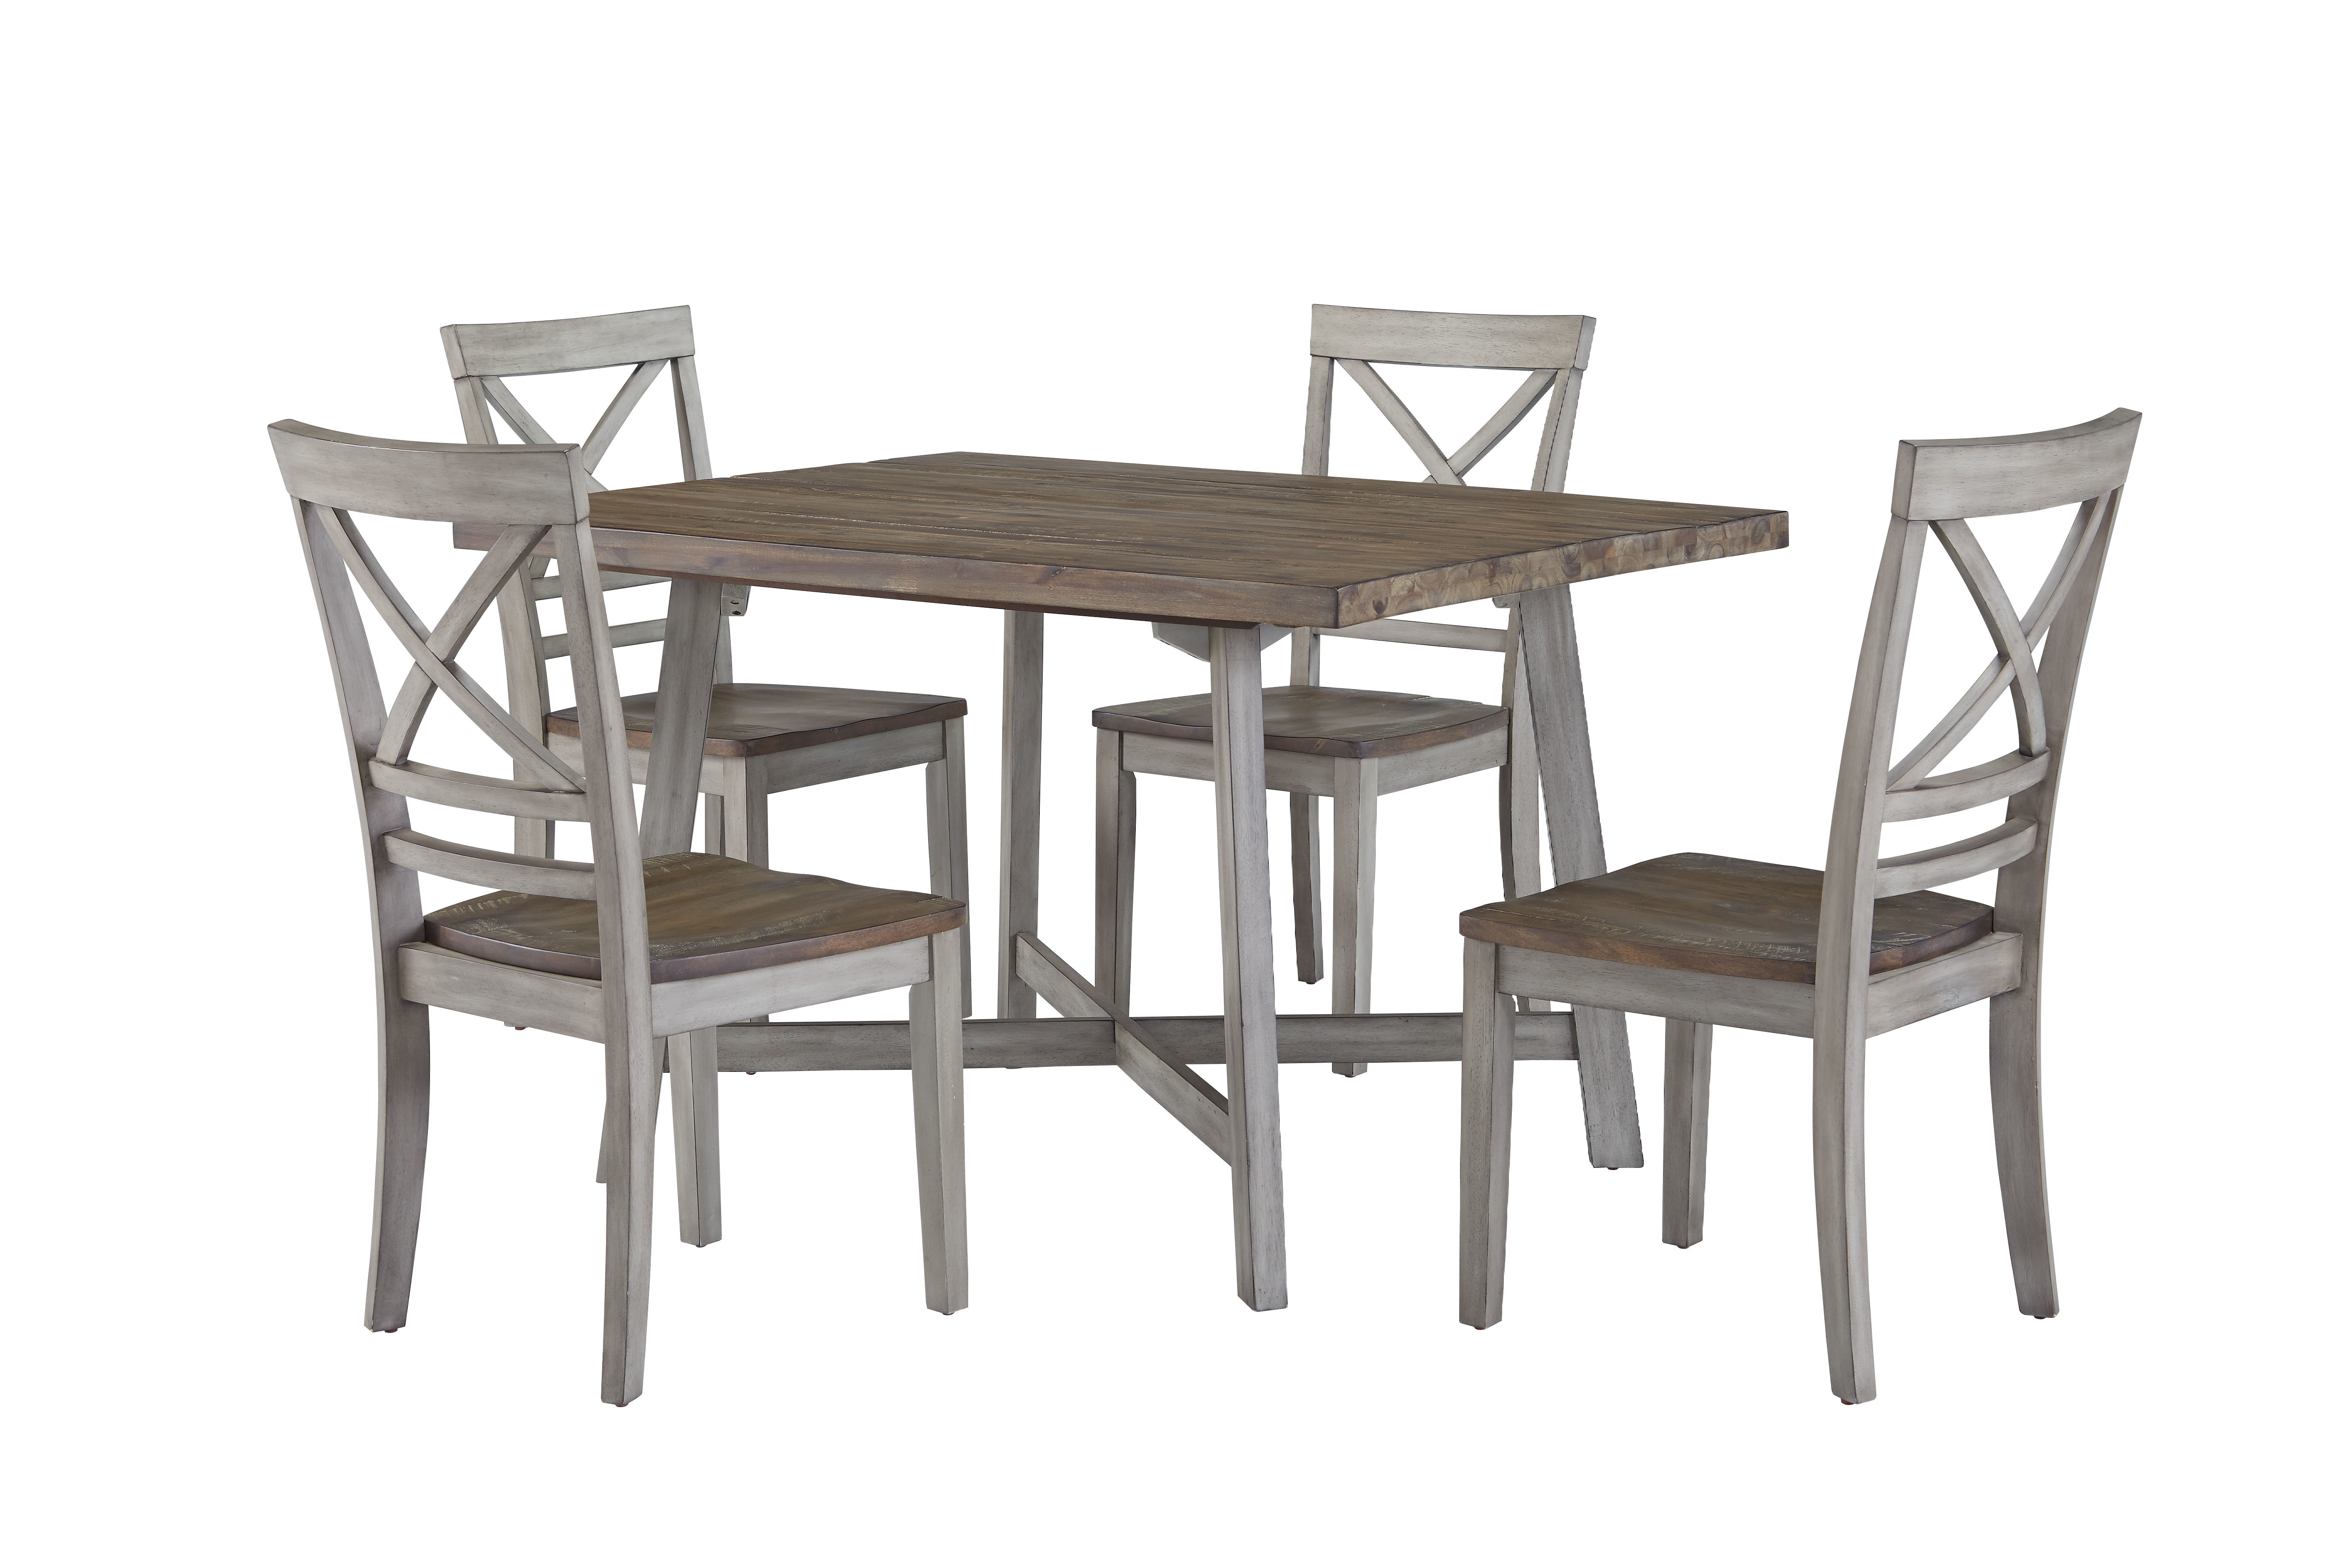 Joss & Main Pertaining To Wiggs 5 Piece Dining Sets (View 10 of 25)